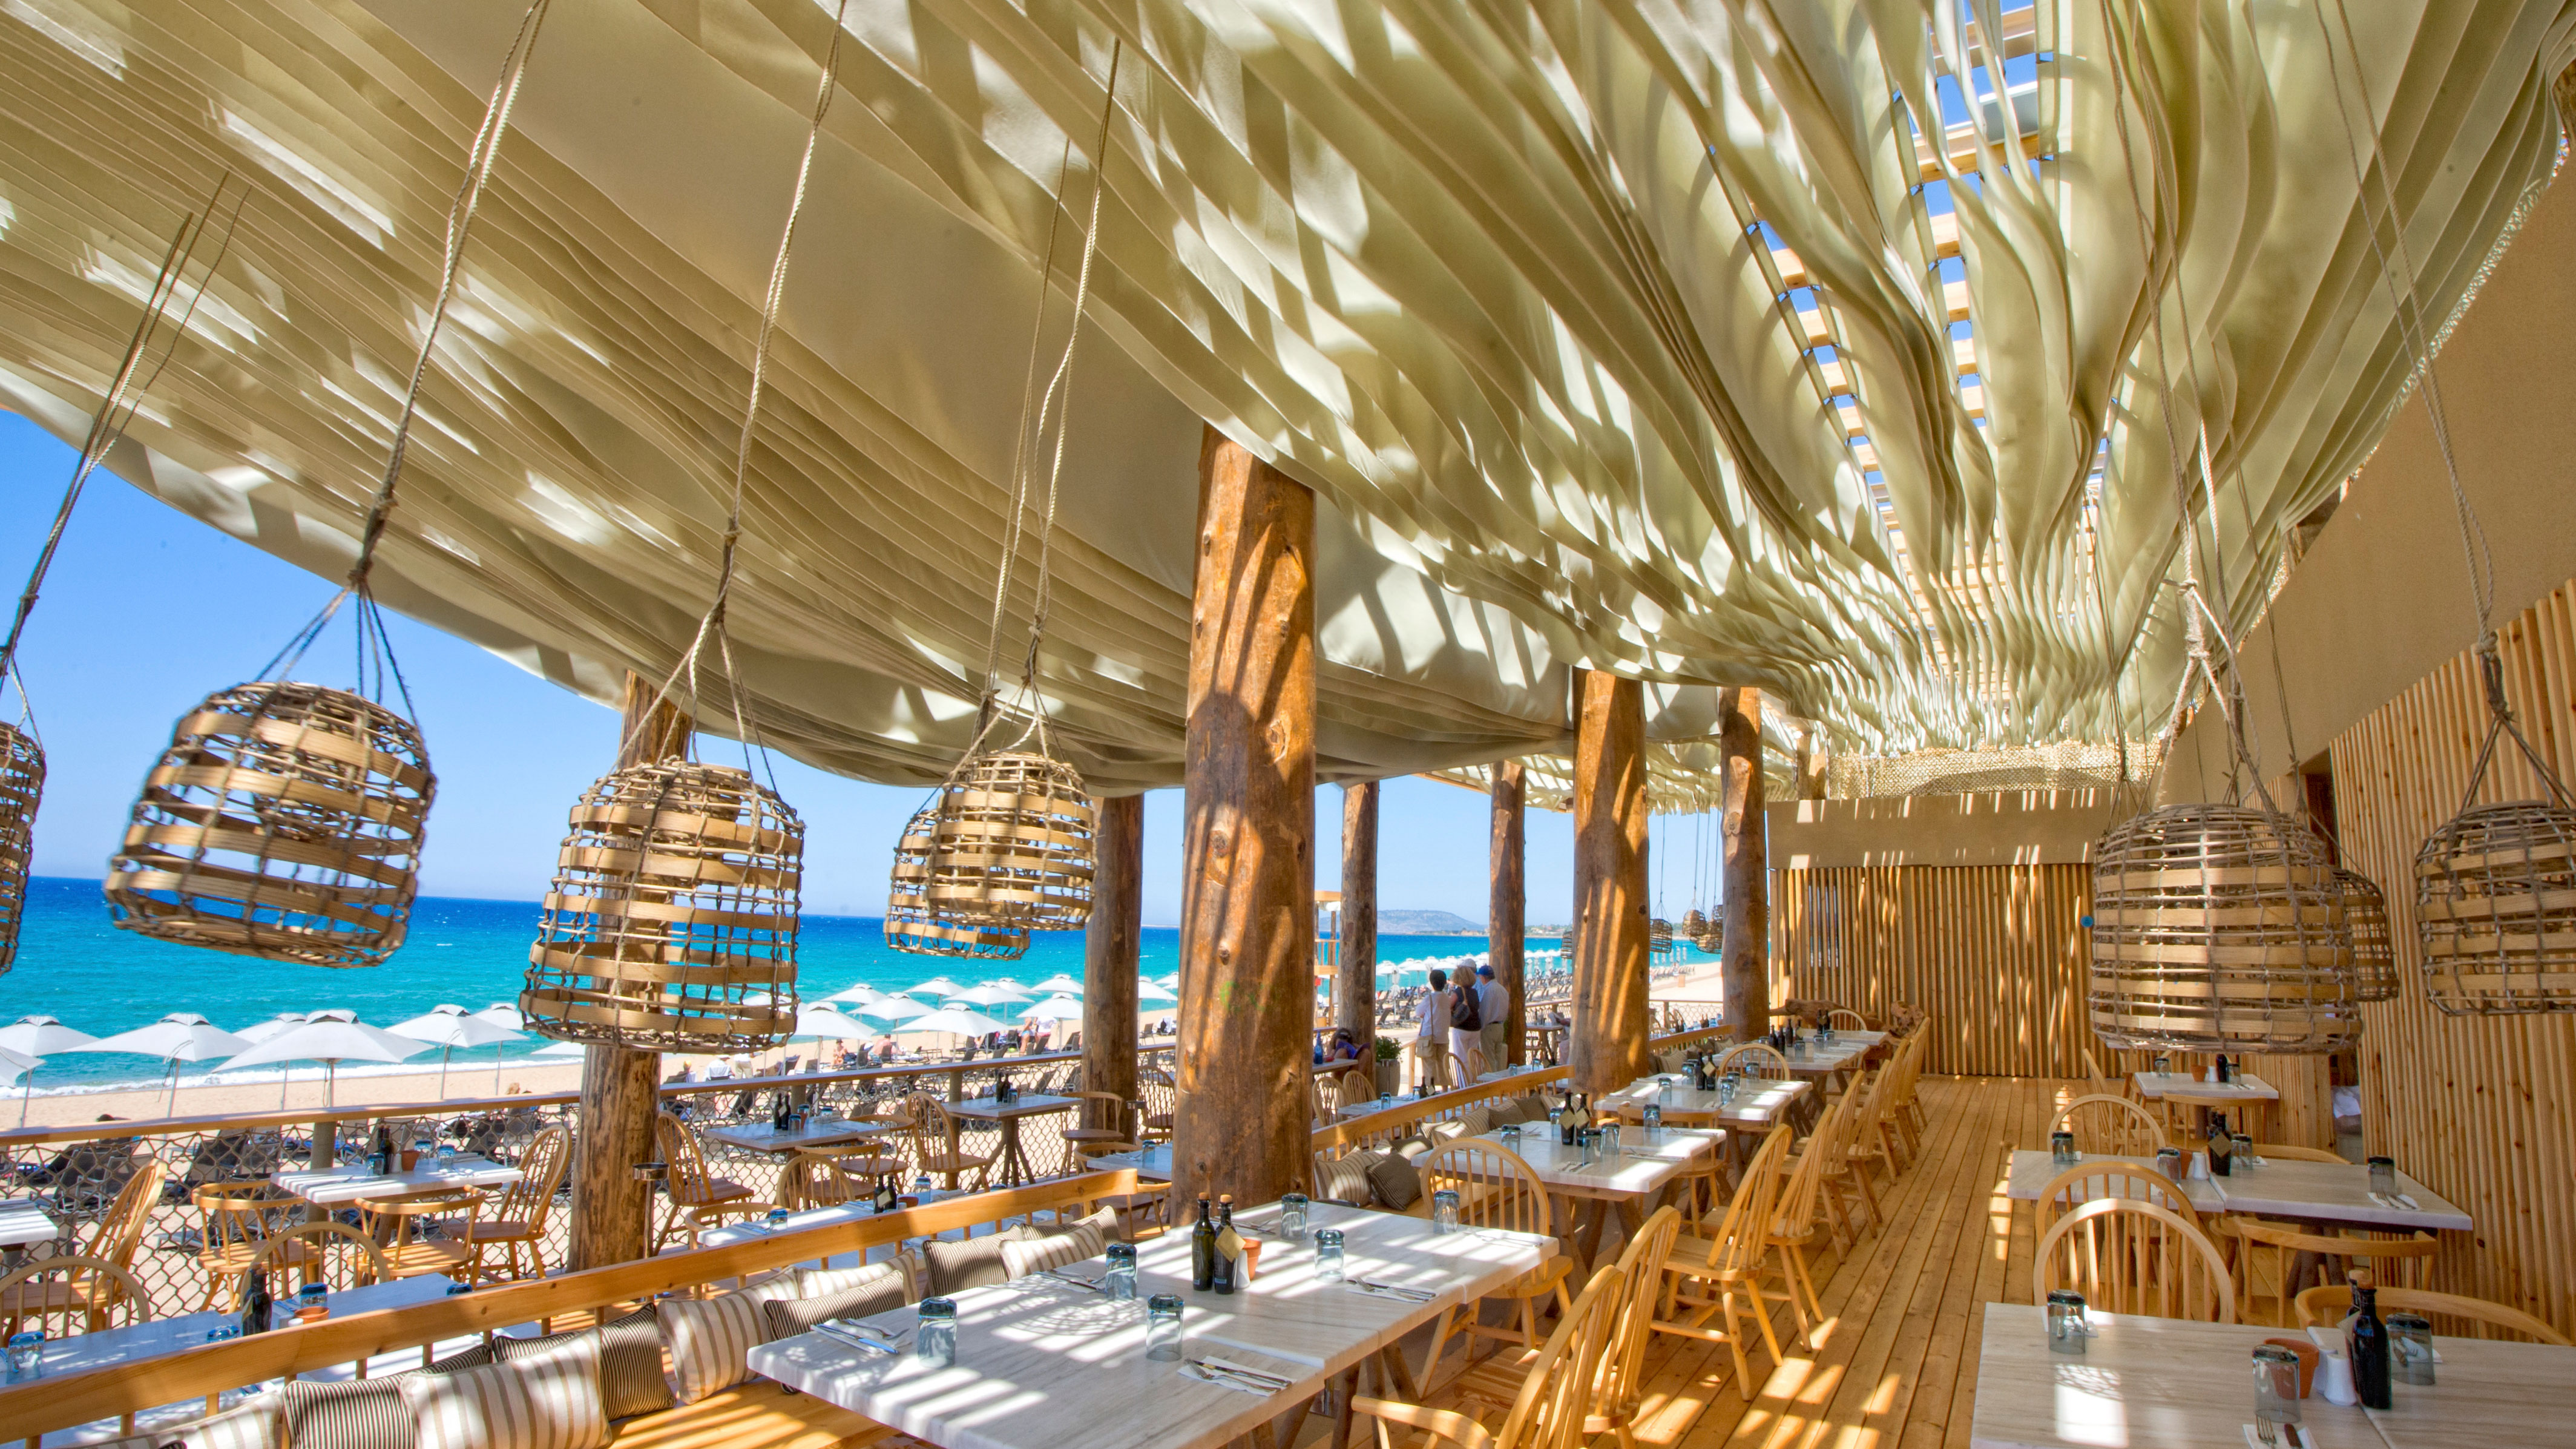 Beach Restaurant Costa Navarino Resort In Greece Has An Incredible Moving Roof